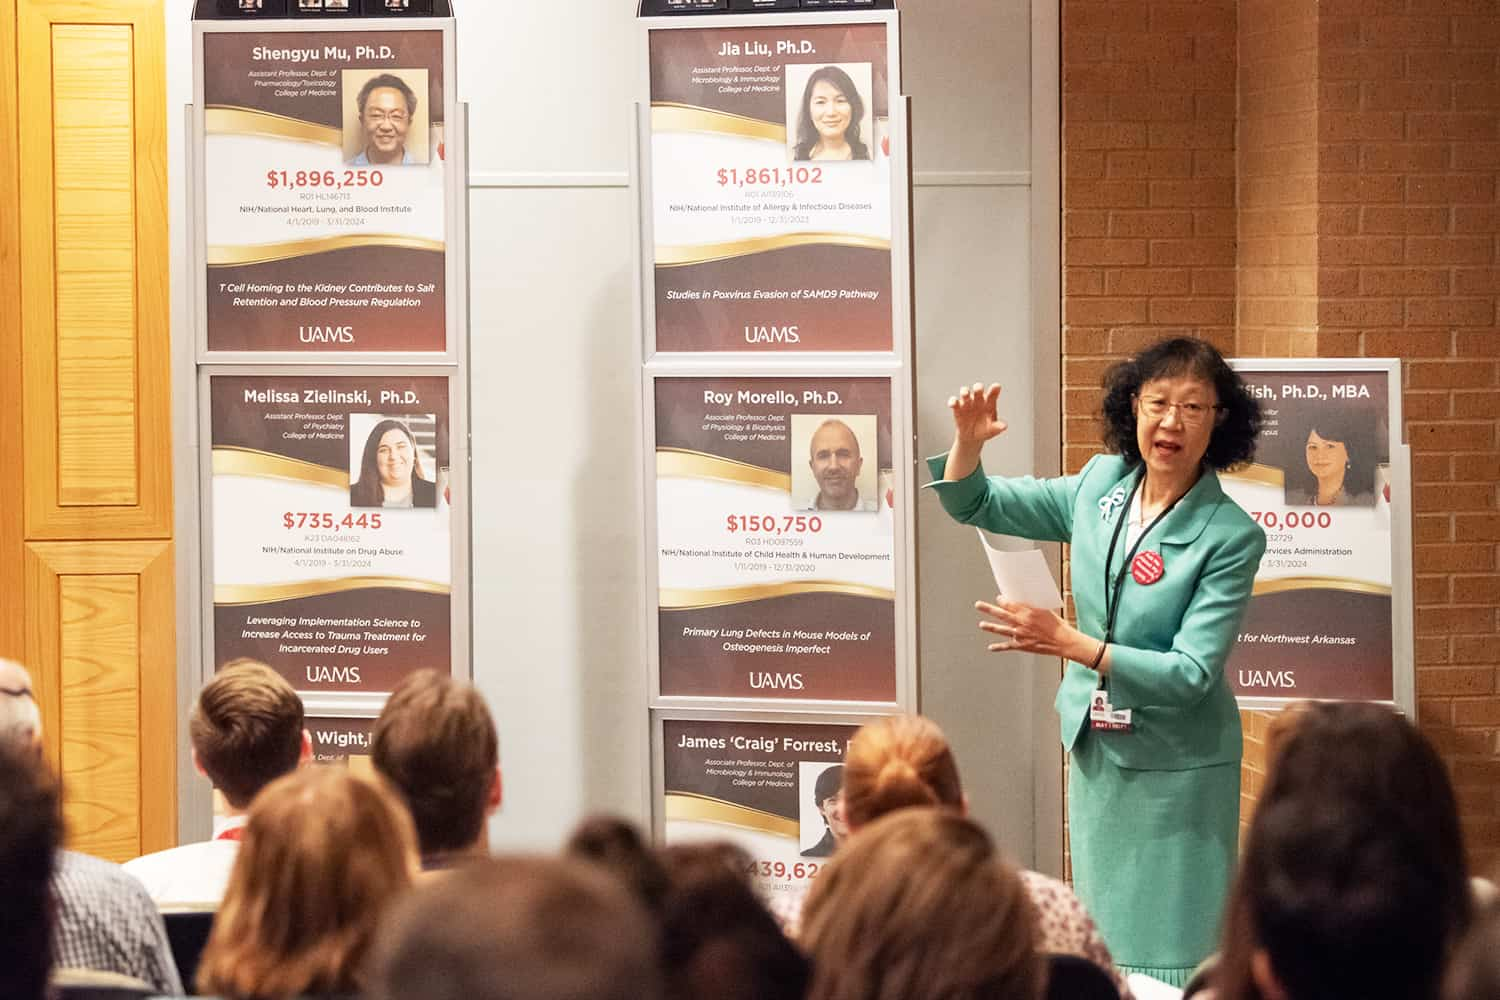 Shuk-Mei Ho, Ph.D., UAMS vice chancellor for research, presents two new displays celebrating recent grants to UAMS researchers.